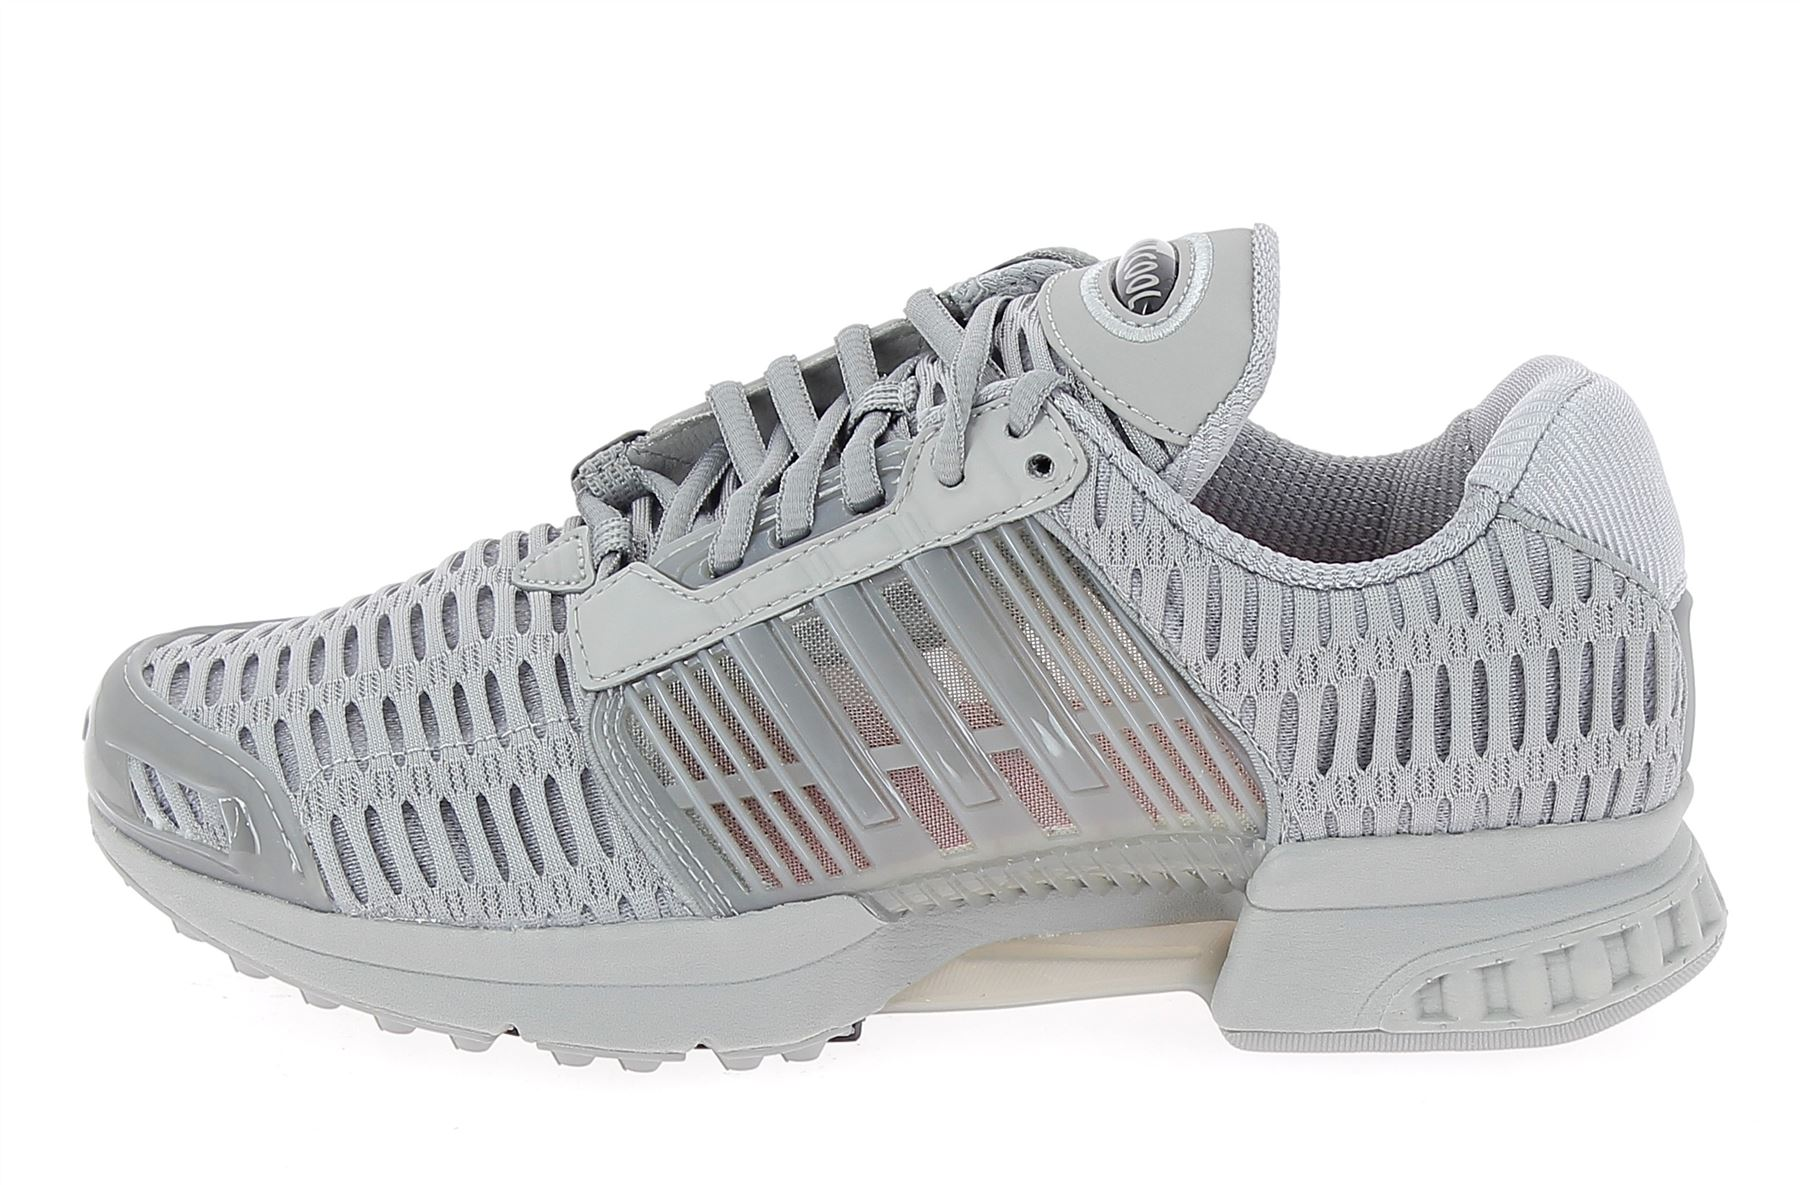 Adidas Climacool Shoes | Cheap White Black Adidas Originals